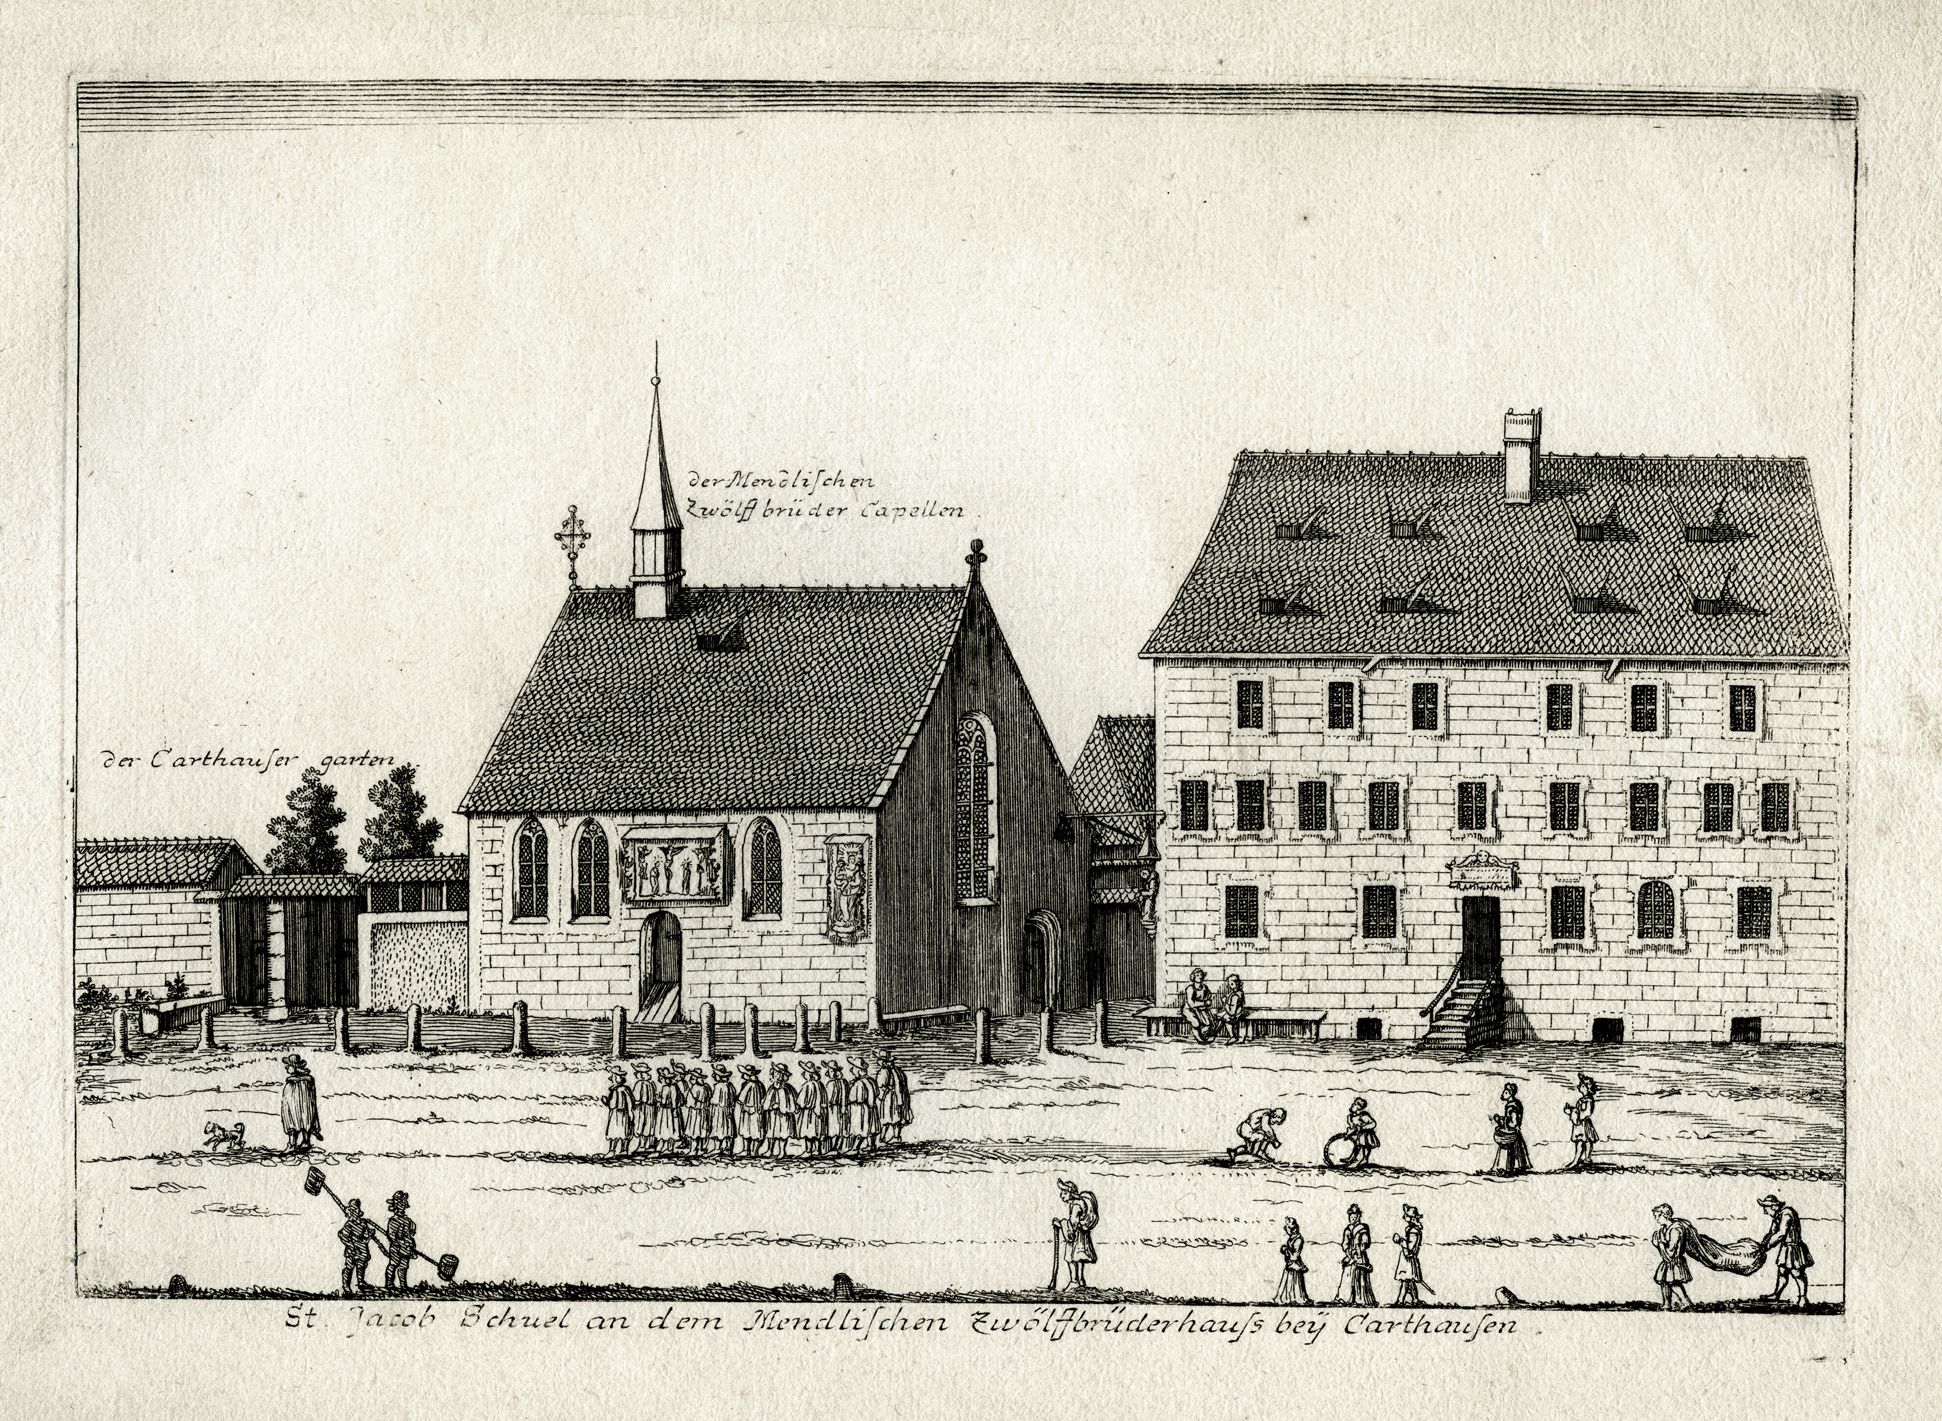 St. James´s School next to Mendel´s Twelve Brothers' House at the Charterhouse General view